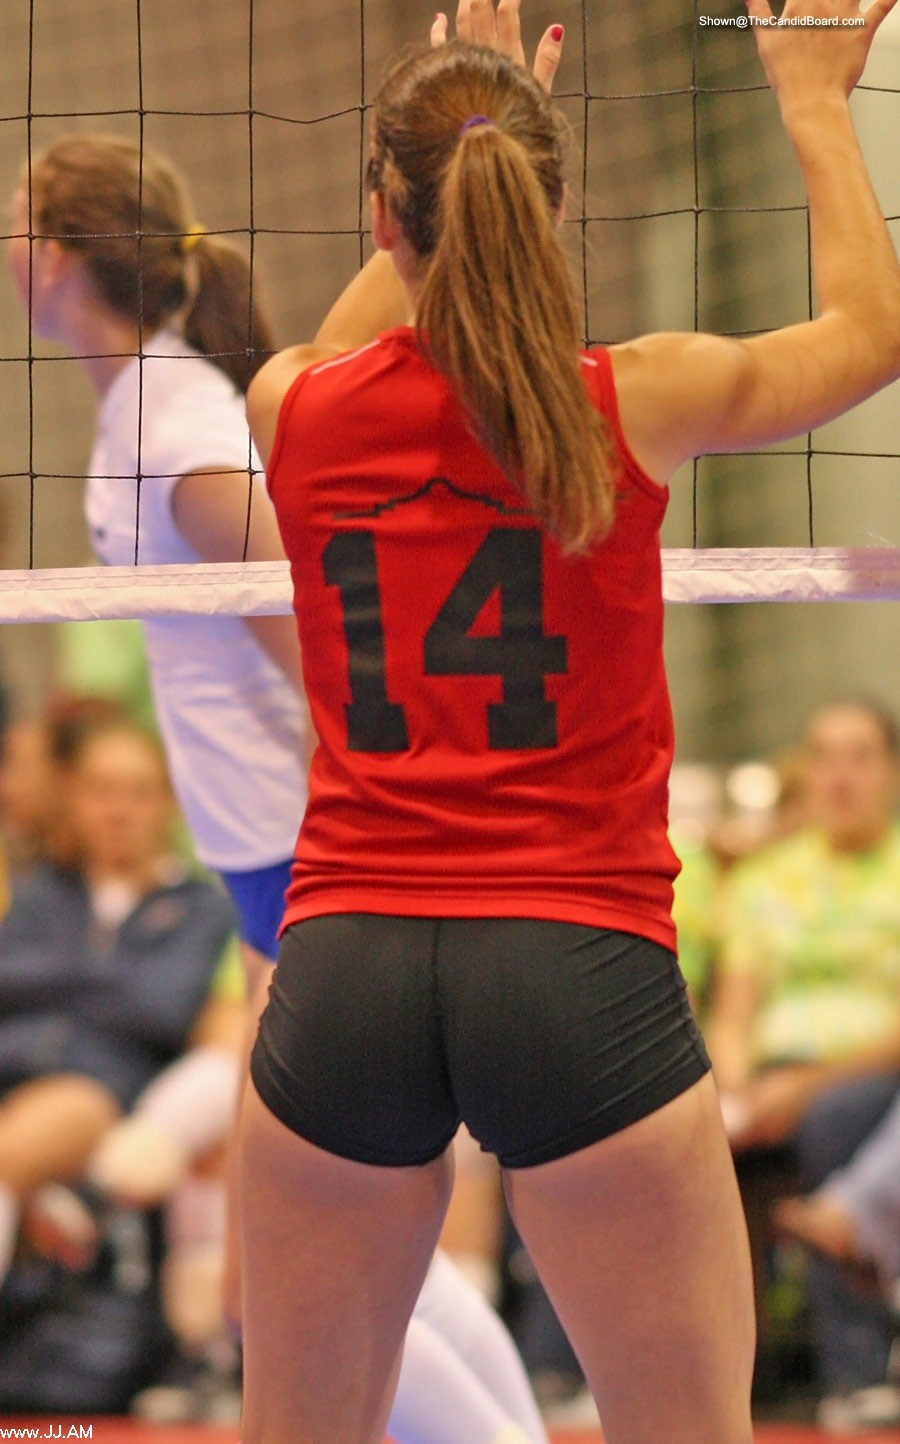 Above told Sexy women in tight short shorts